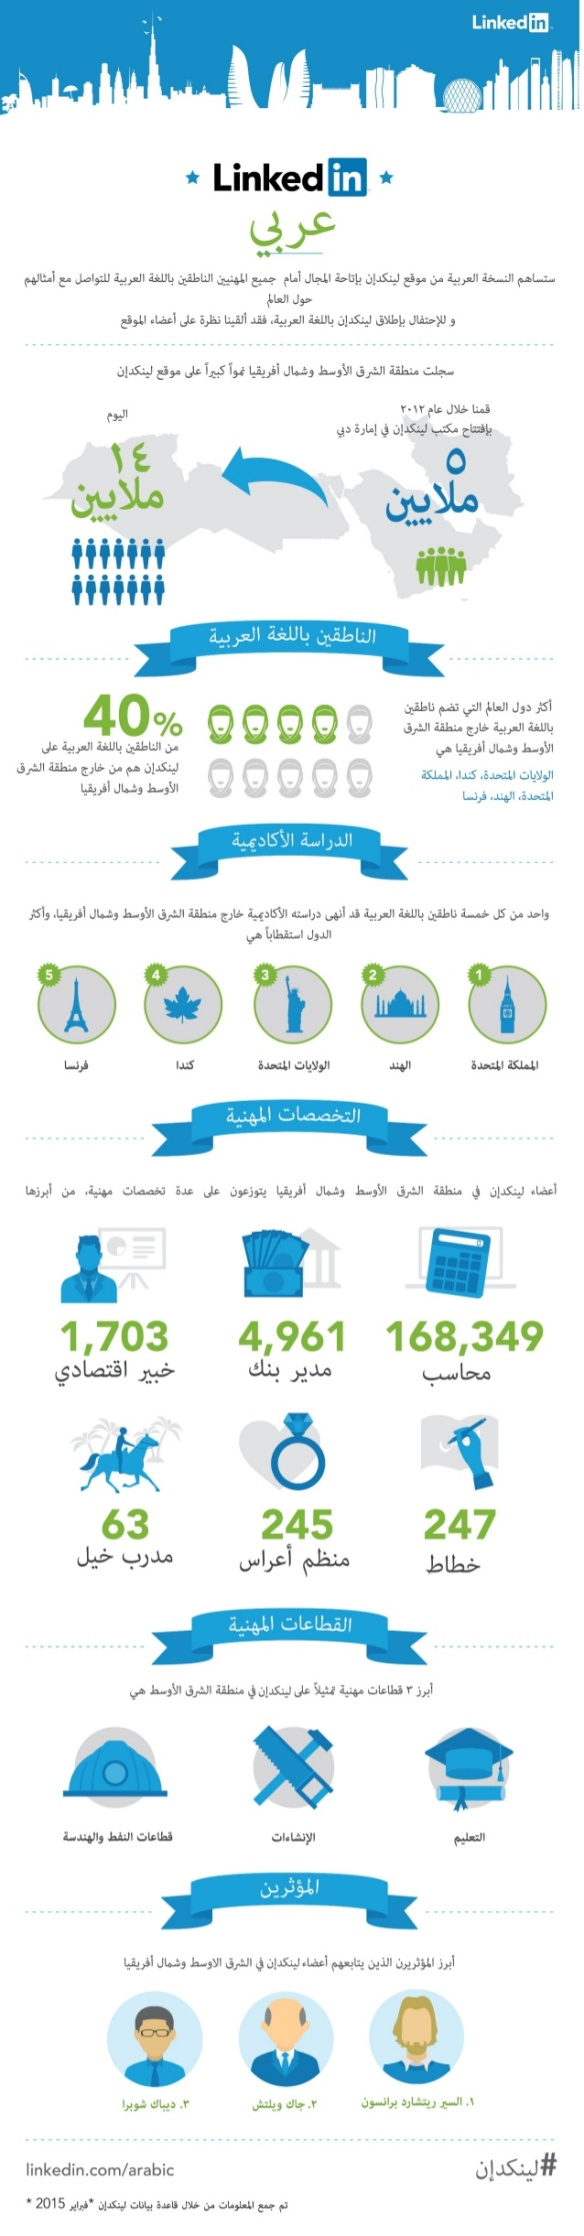 LinkedIn's user base in the Middle East and North Africa is detailed in this infographic (in Arabic)